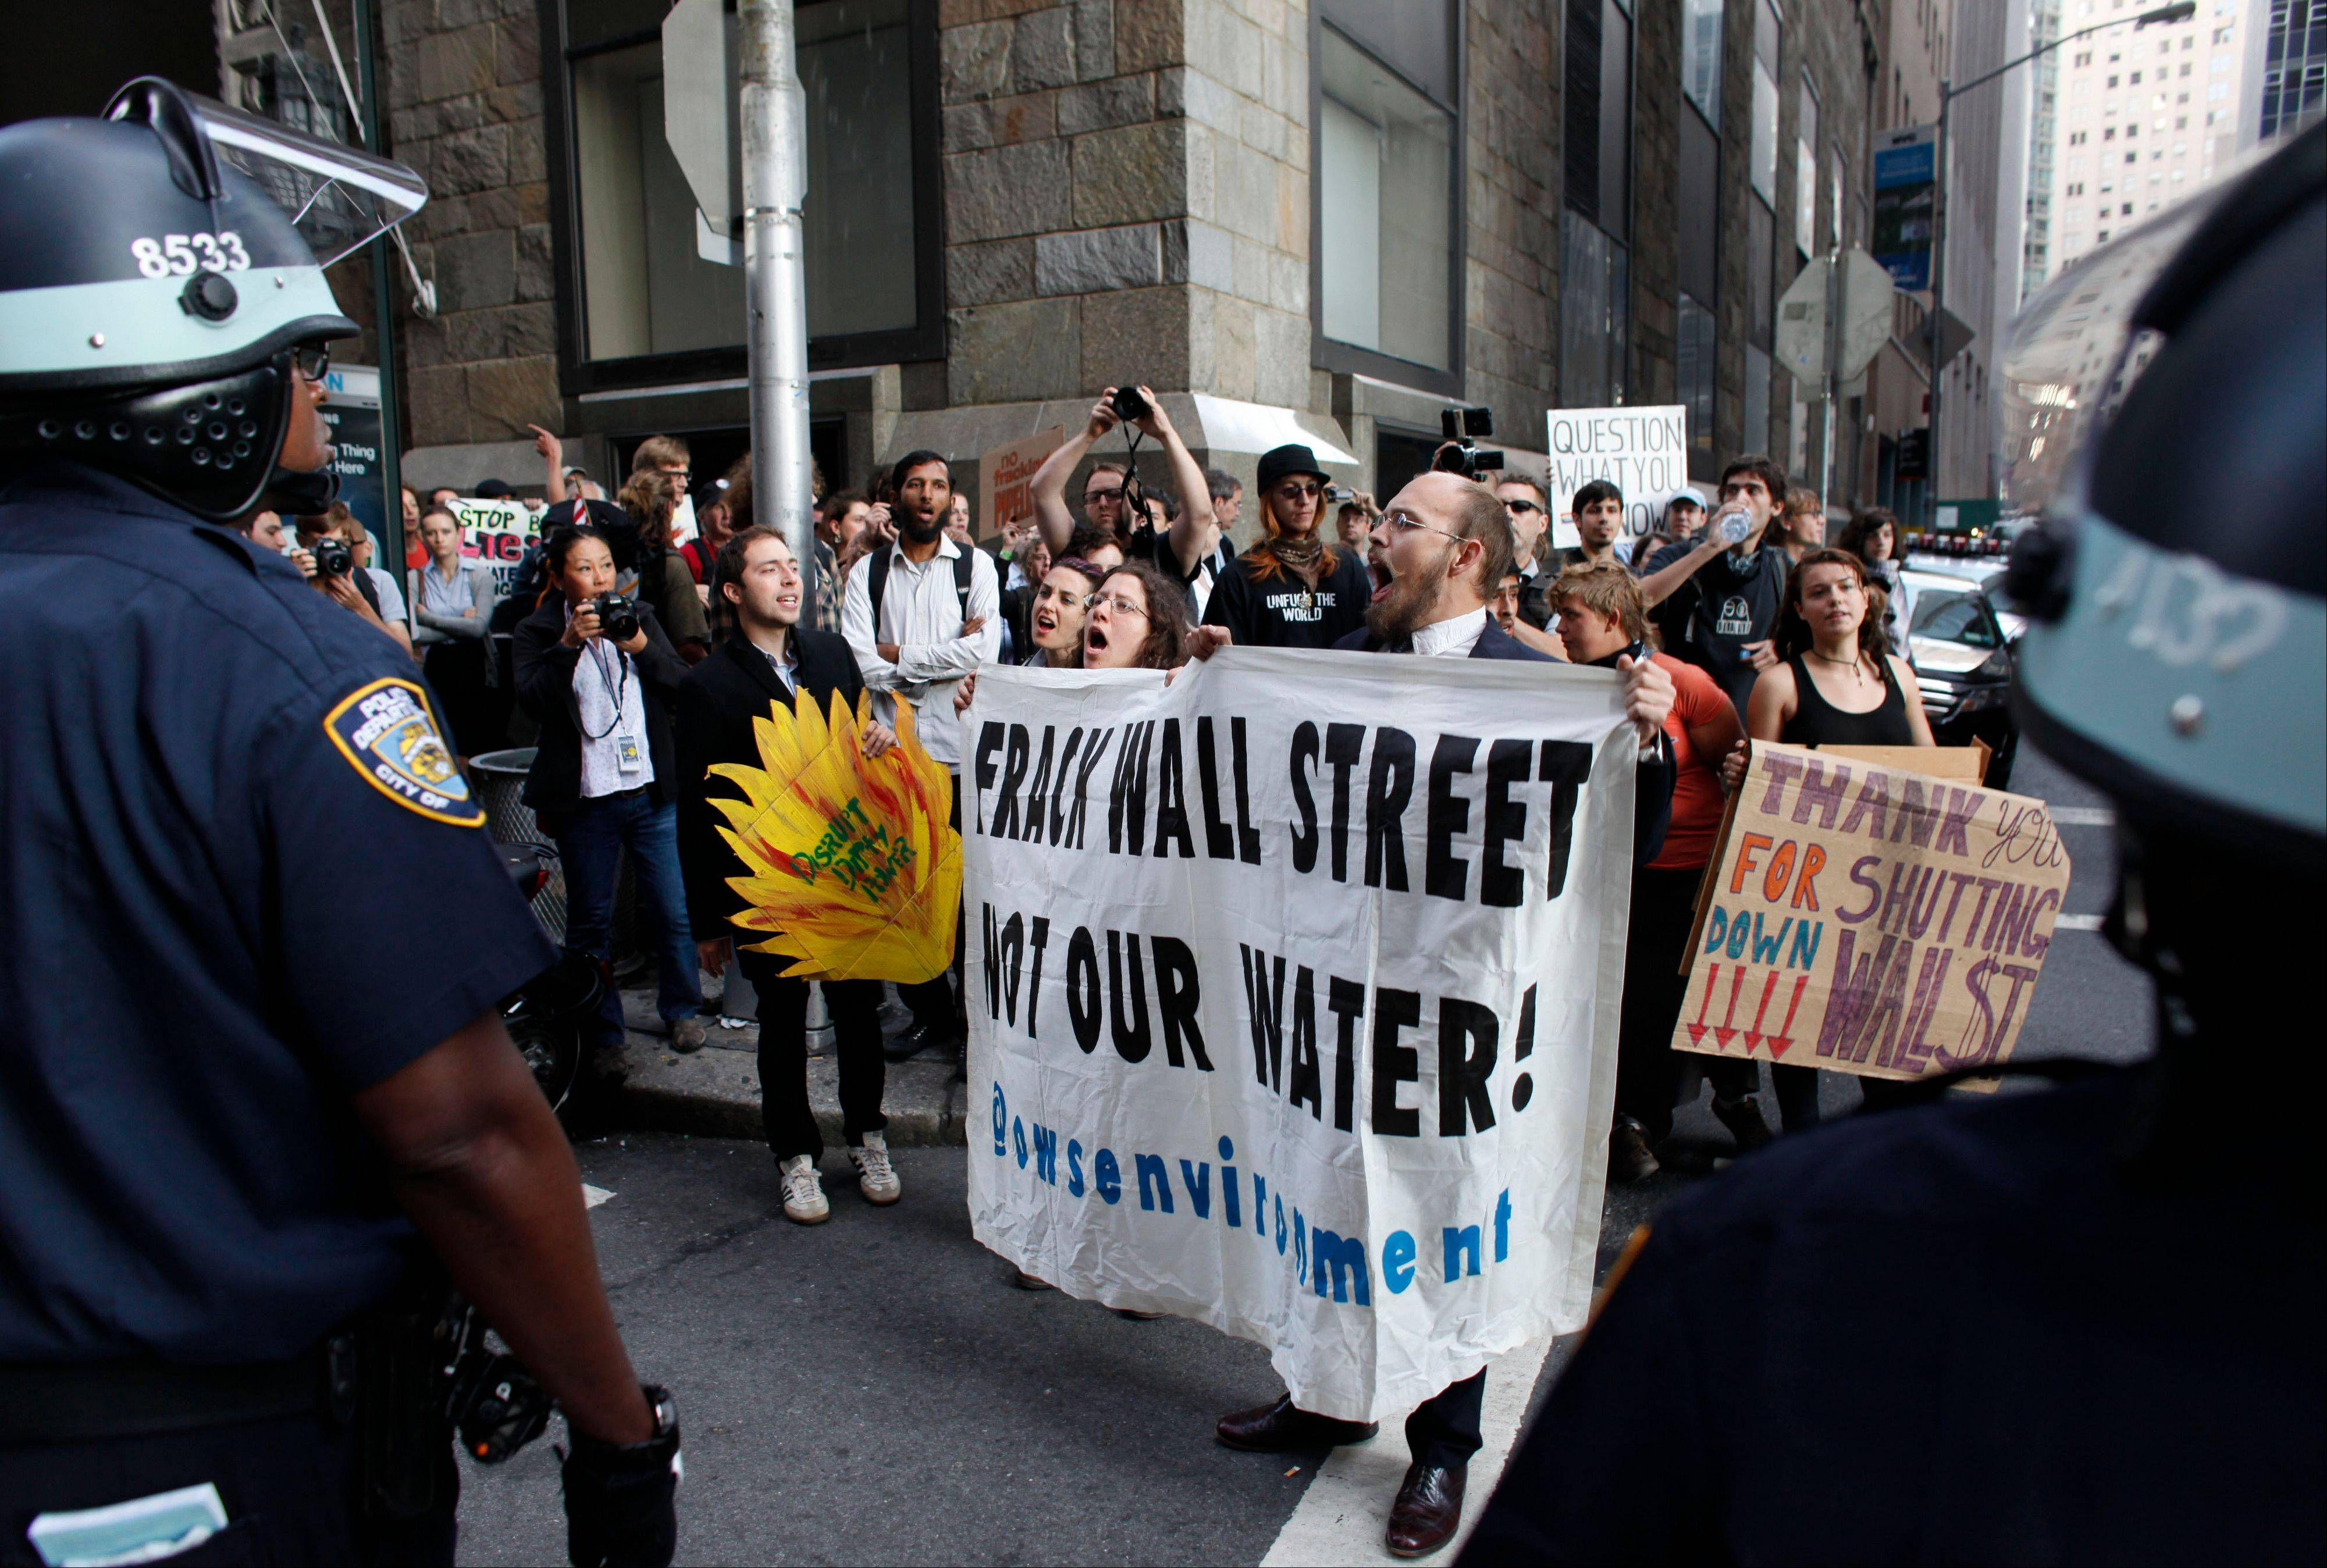 Protestors and police face off during an Occupy Wall Street march Monday in New York. More than 100 Occupy Wall Street protestors were arrested during marches and demonstrations around New York�s financial district on the anniversary of the grass-roots movement.